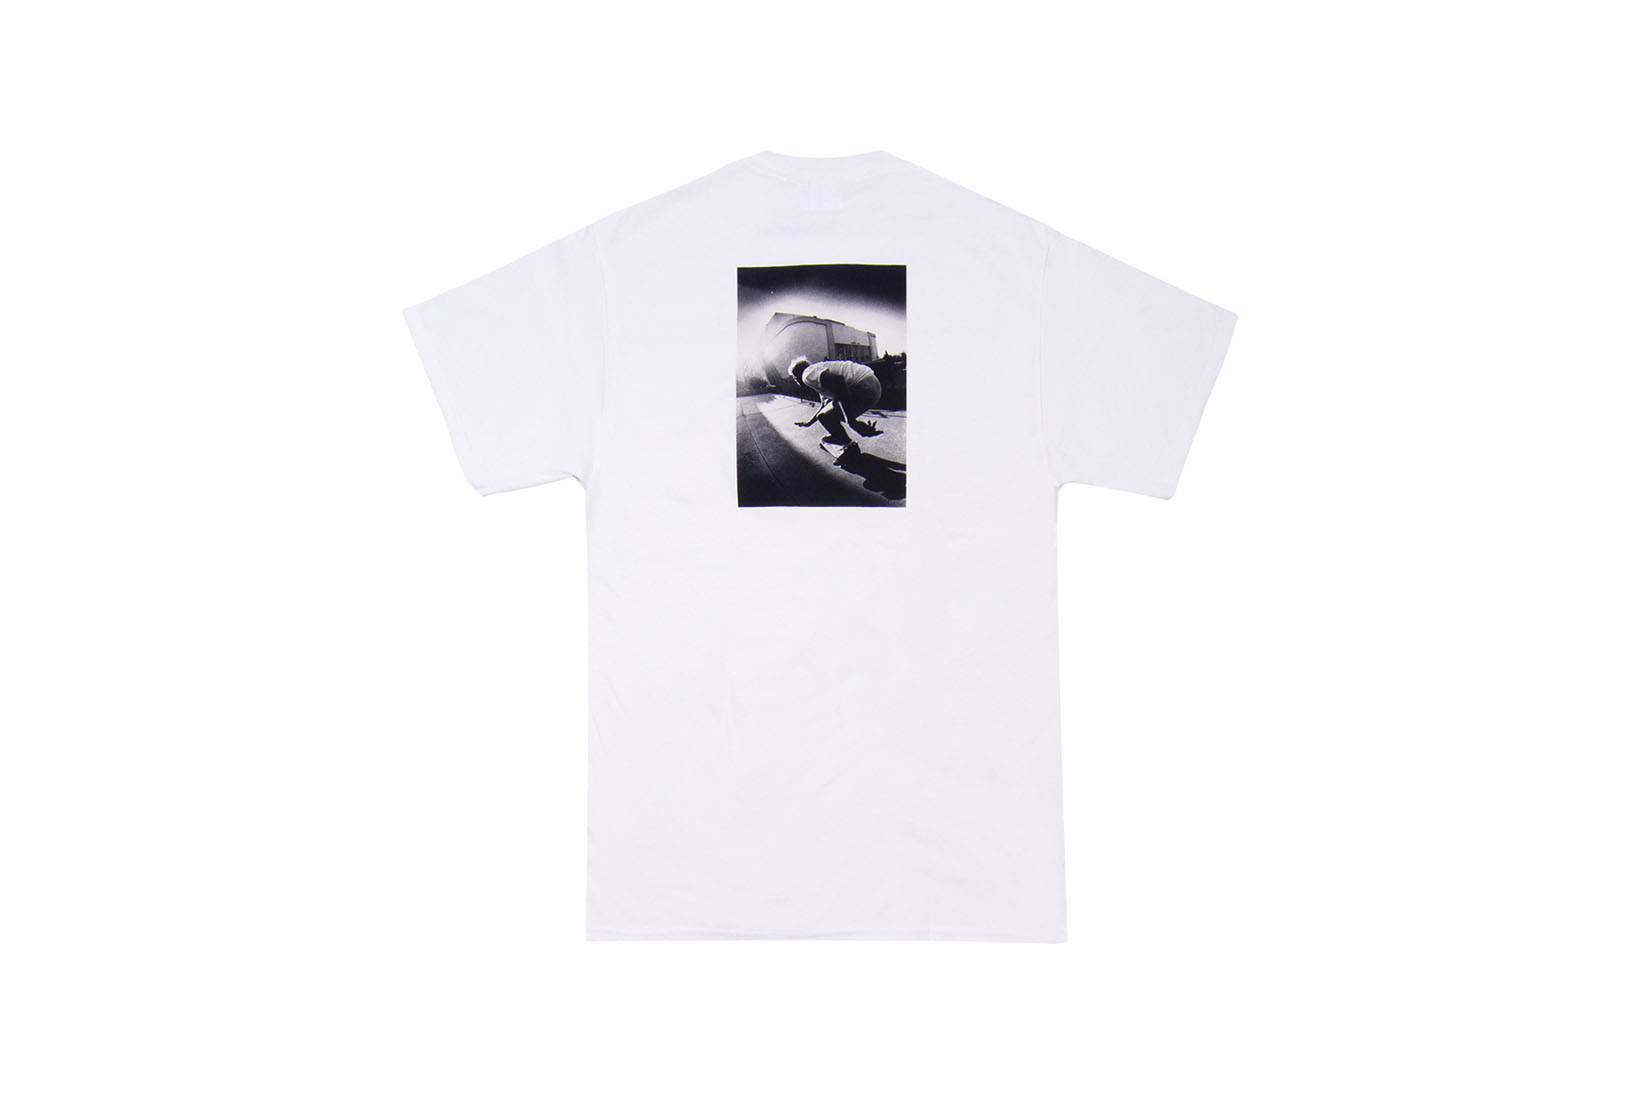 Noah Partners With Grant Brittain and Arkitip for Special Capsule Collection